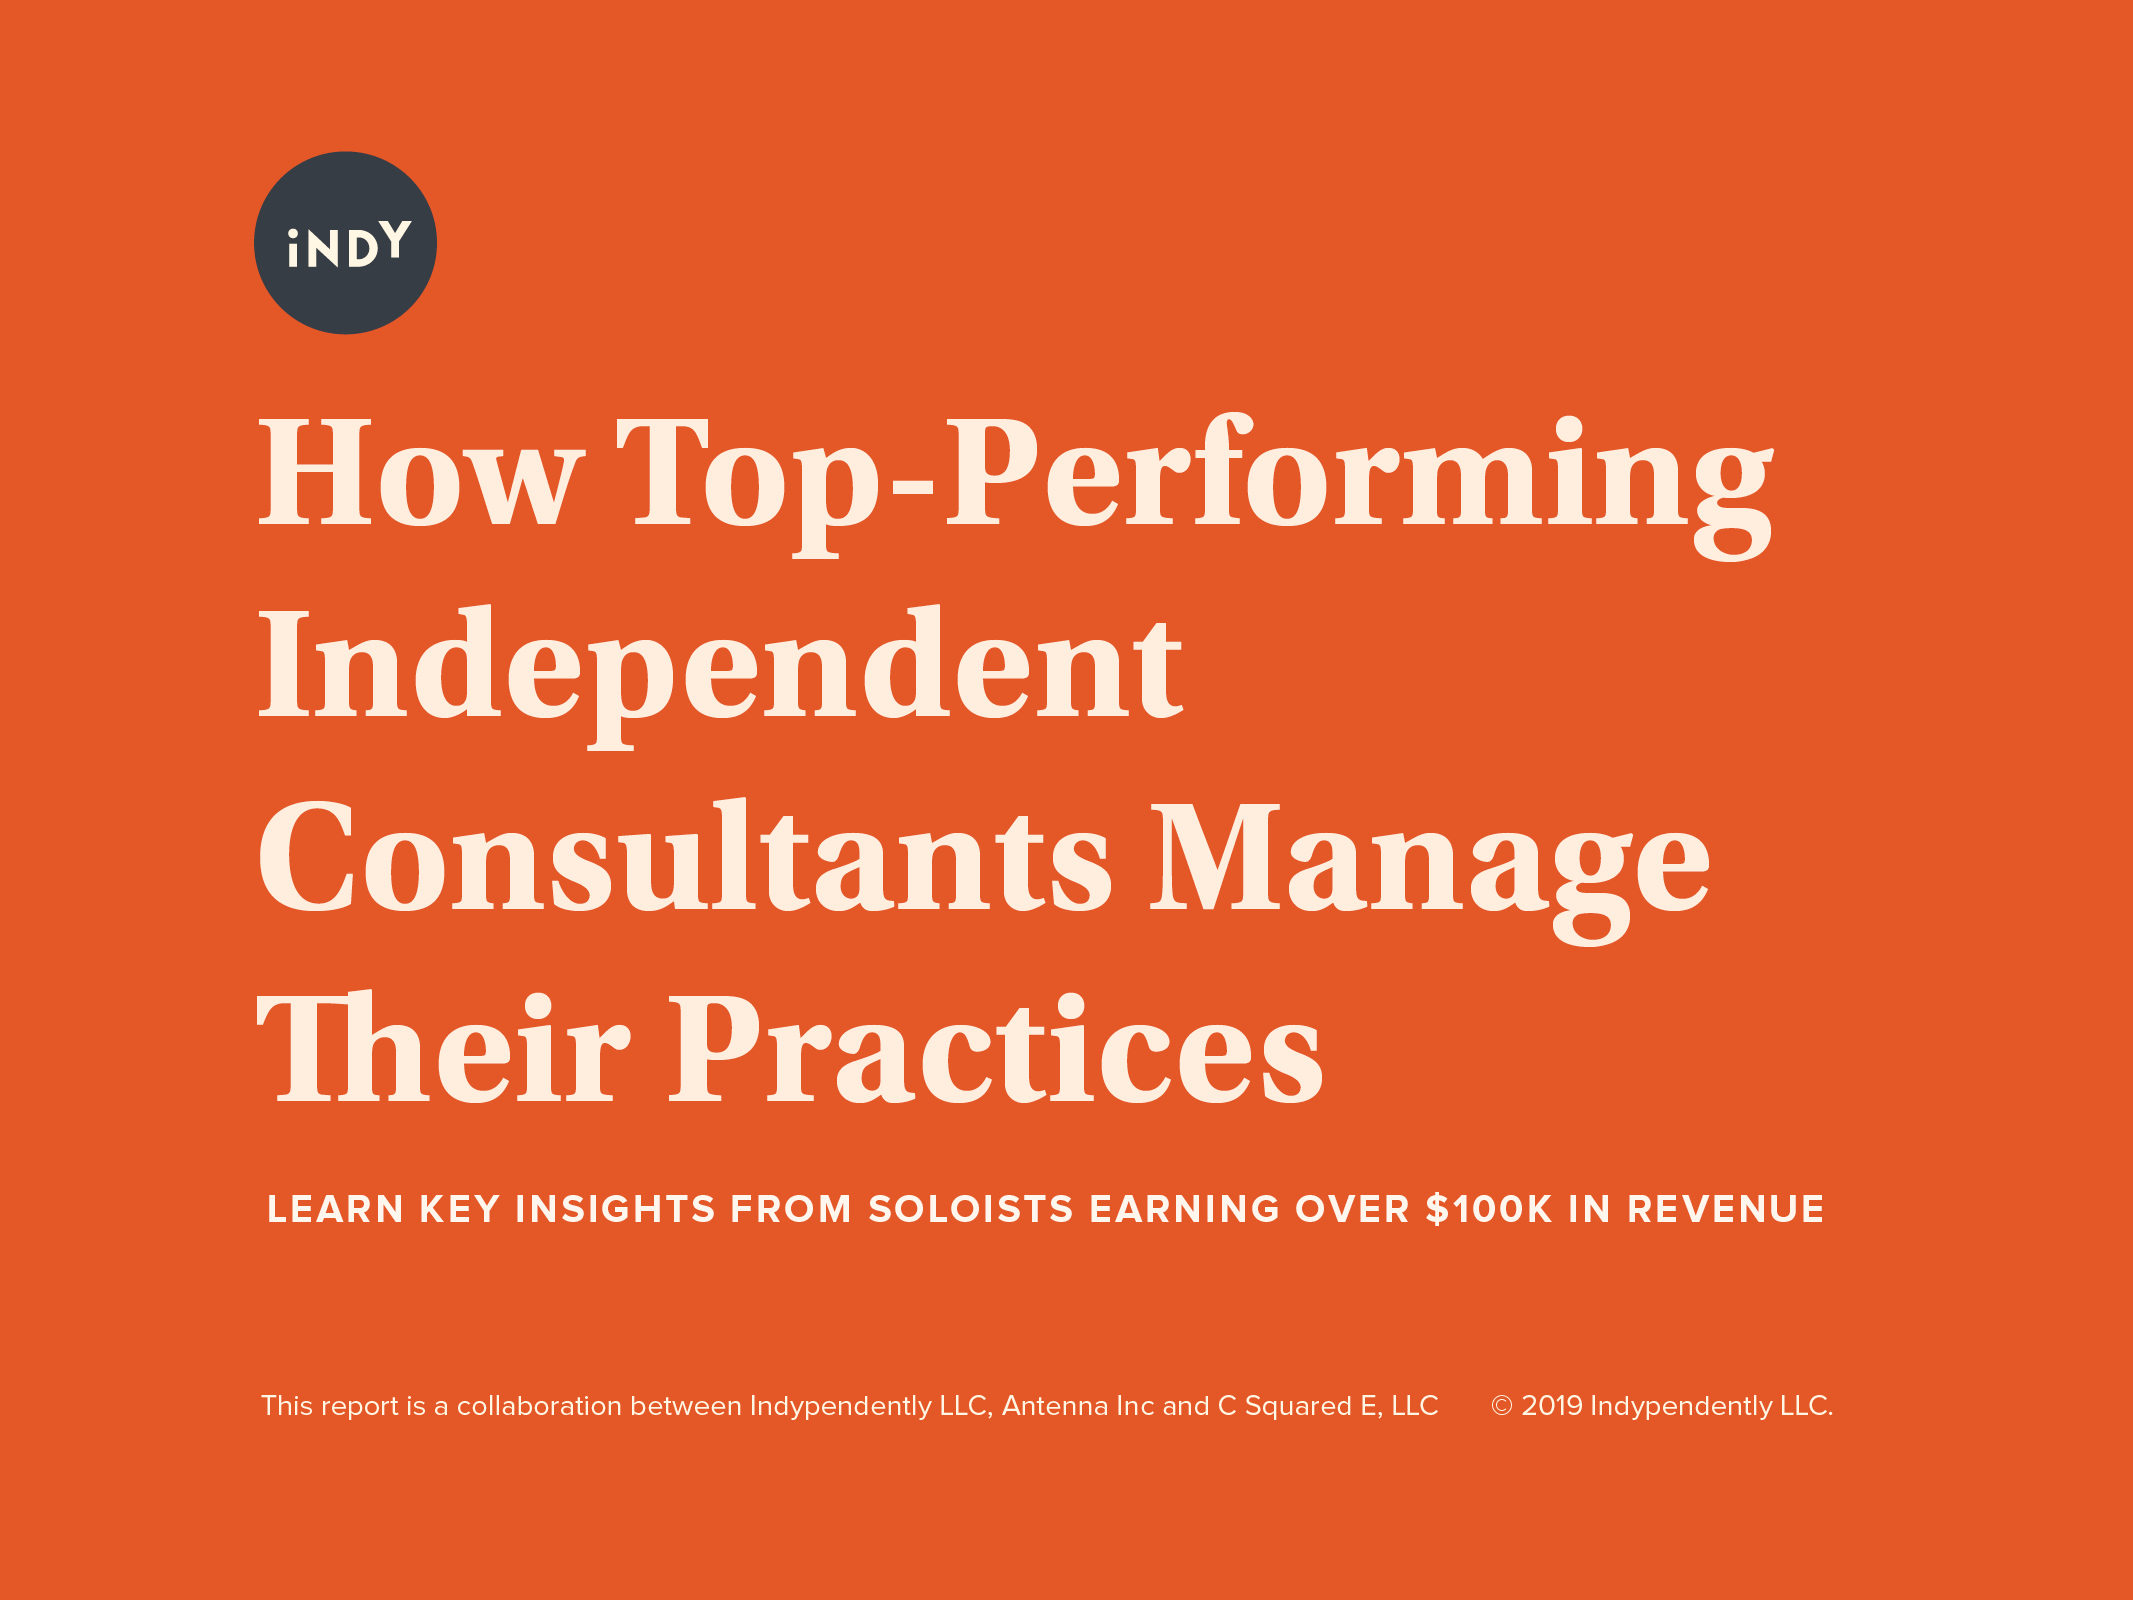 How Top-Performing Independent Consultants Manage Their Practices